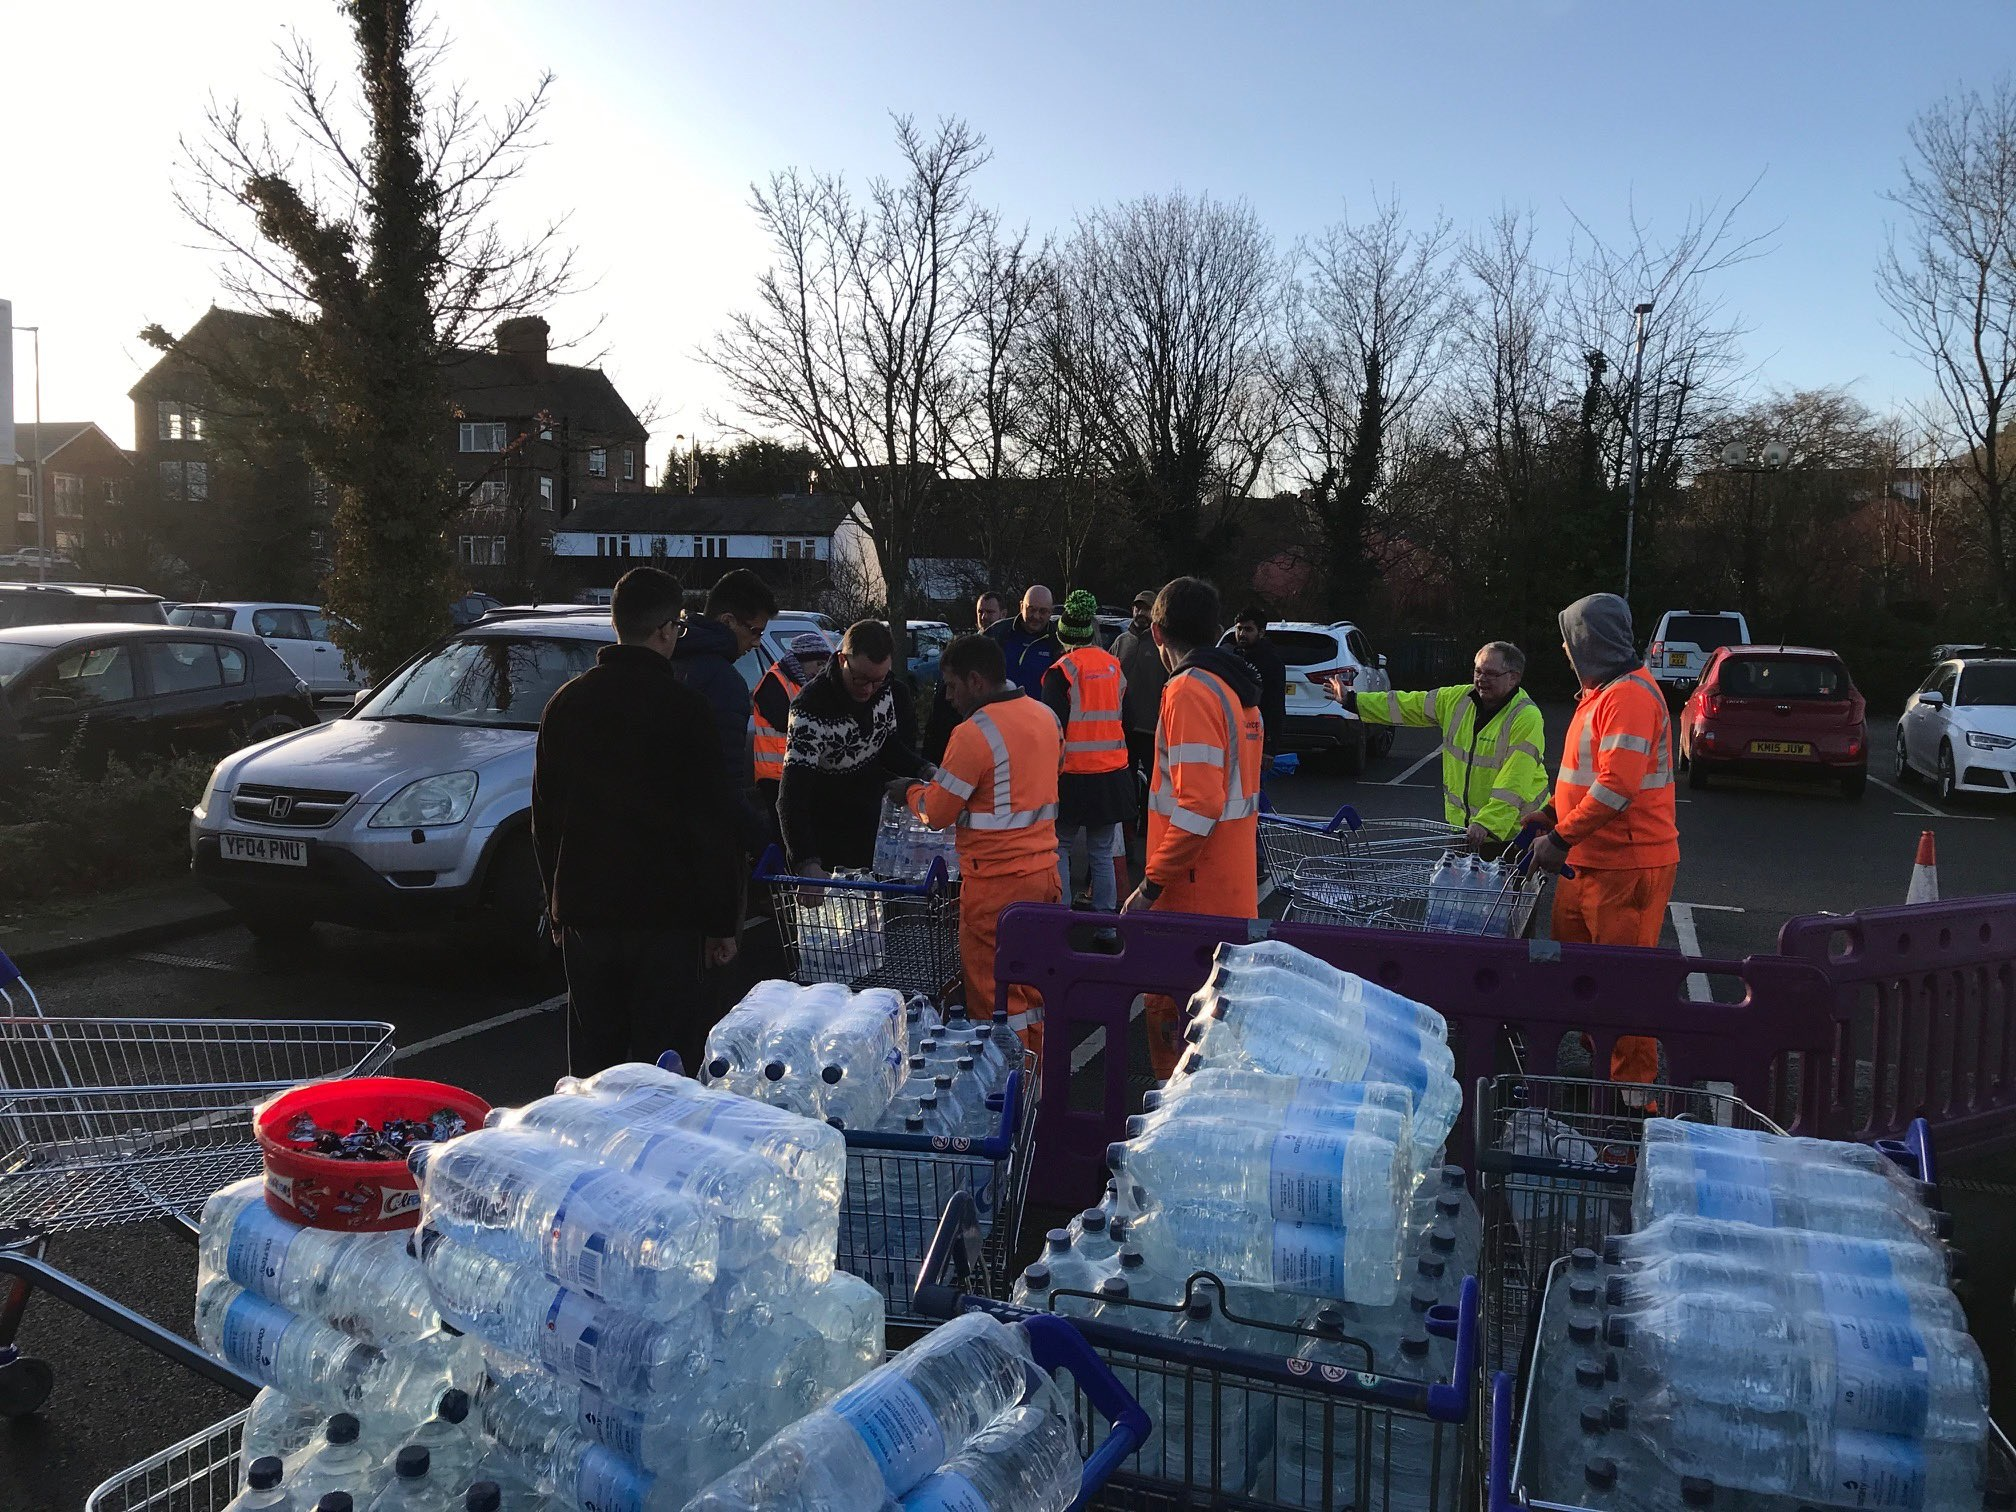 Some bottles being handed out by Anglian Water